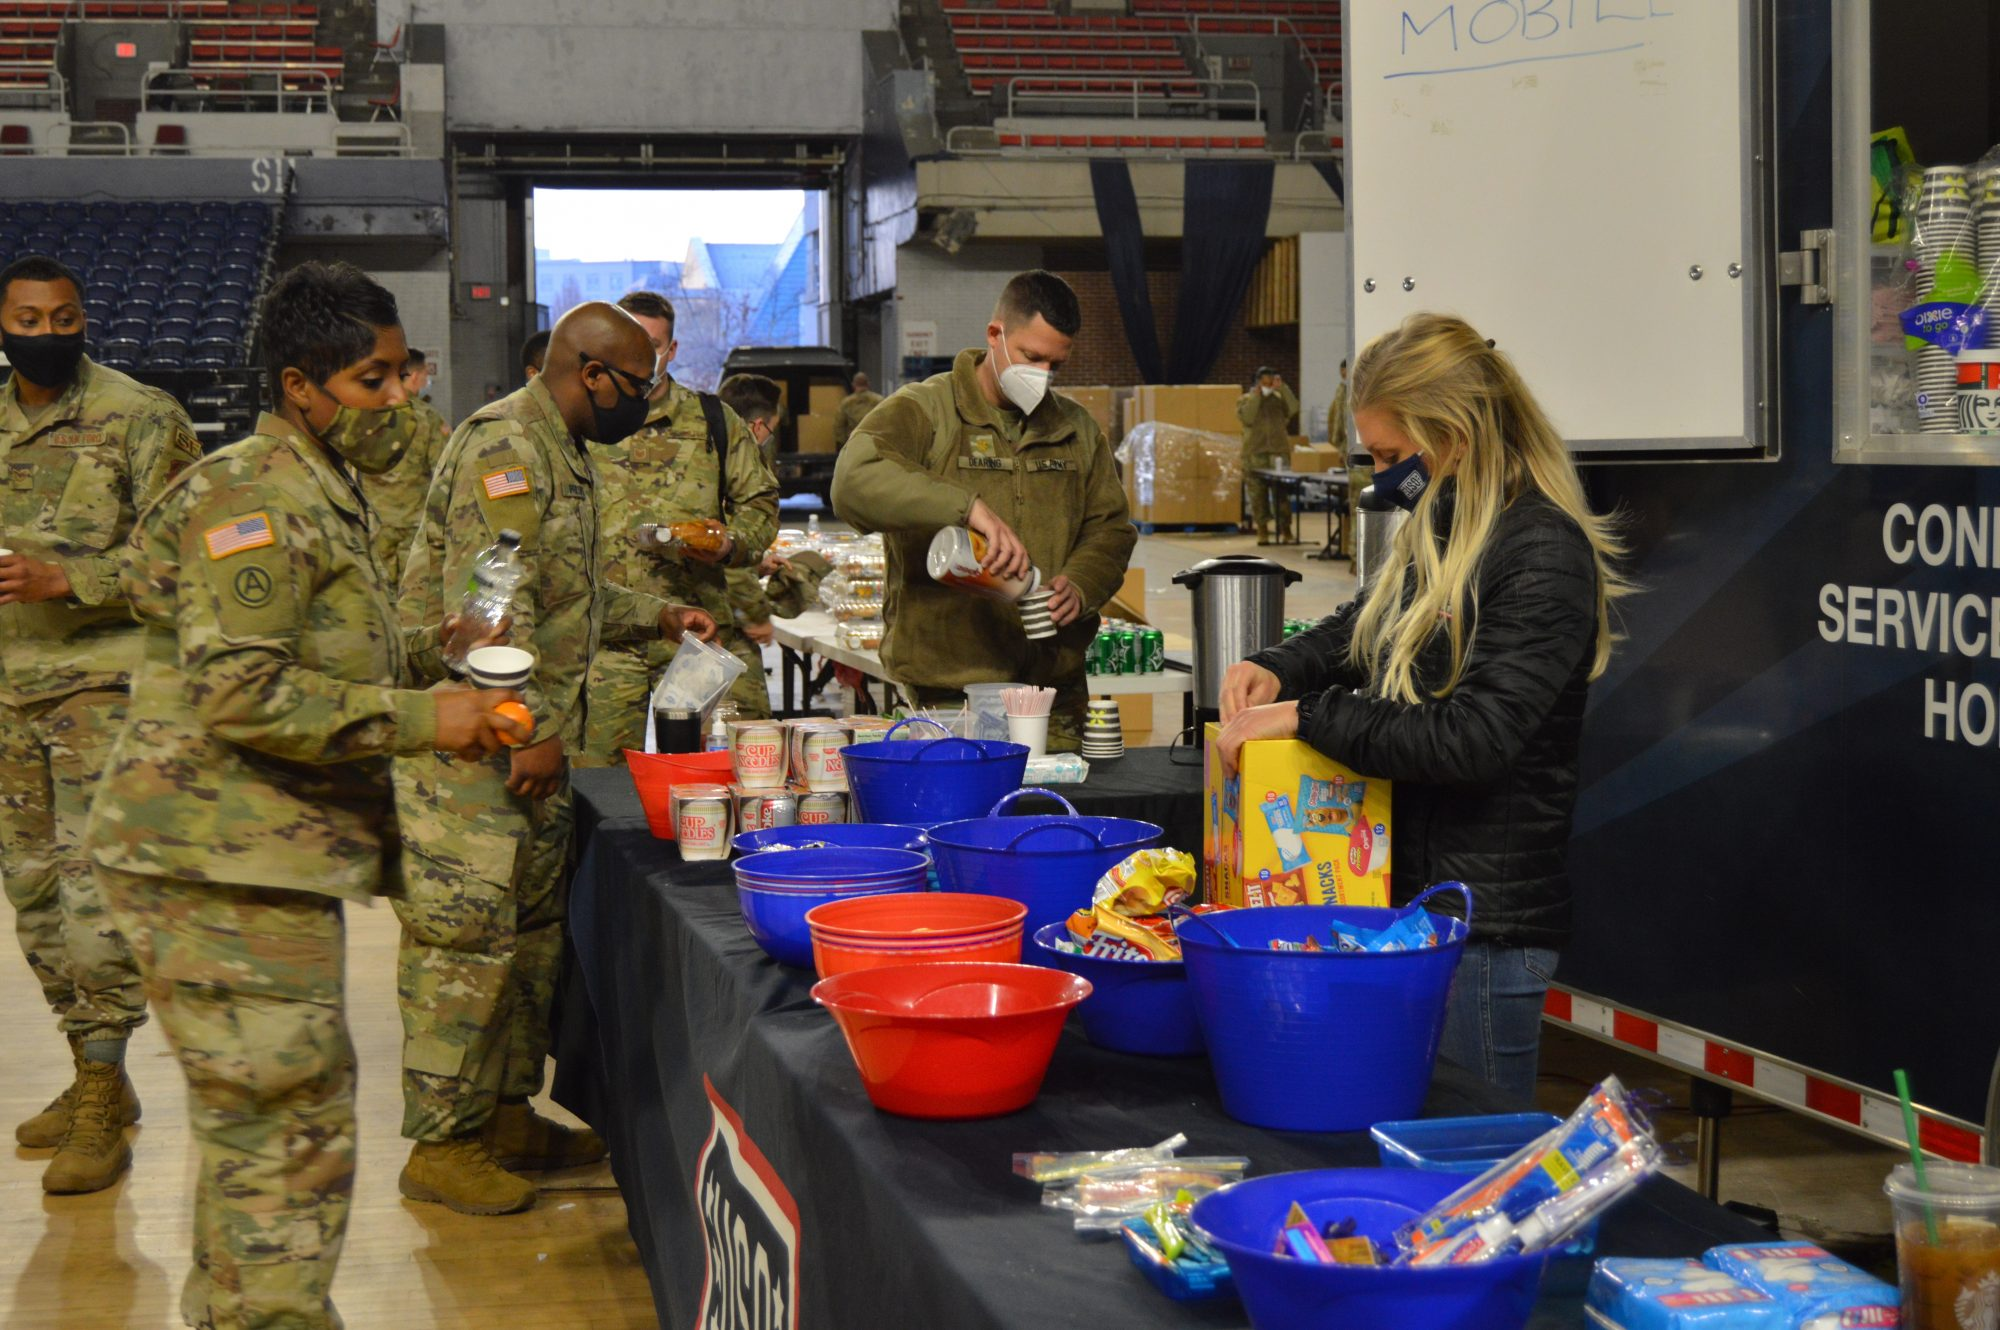 USO and National guard